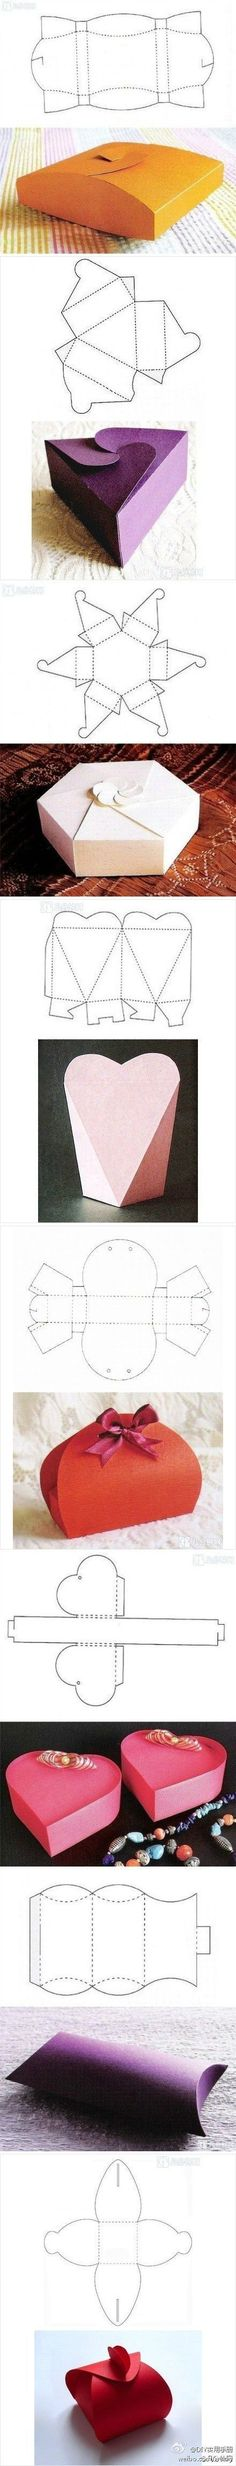 Templates To Make A Variety Of Shaped Boxes - Click for More...